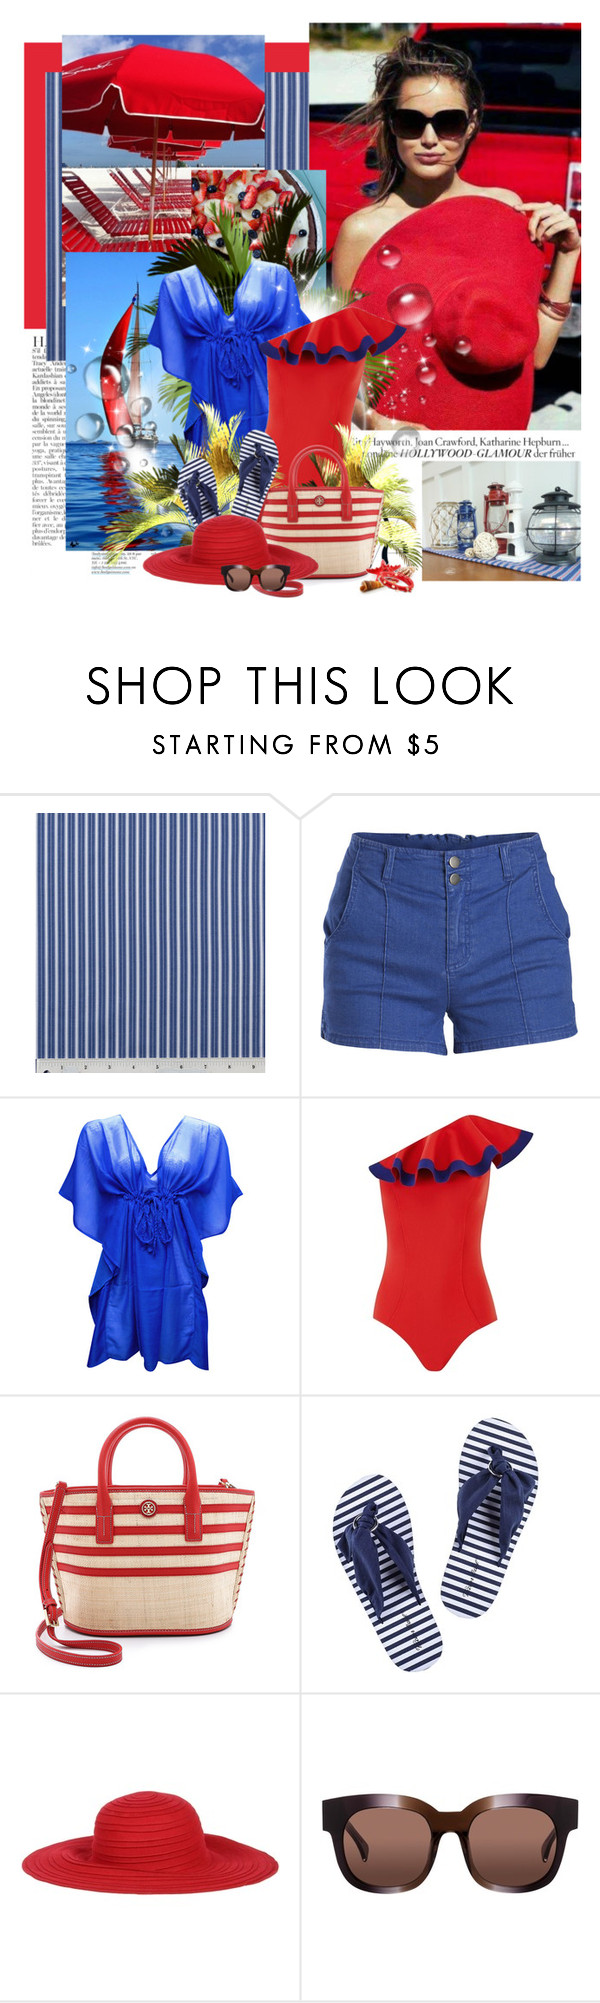 """""""Everyday Lovely♥ 2015/07/04"""" by erissa ❤ liked on Polyvore featuring Anja, Pieces, Lisa Marie Fernandez, Tory Burch, MARBELLA, AM Eyewear, BP., Summer, swimwear and sunglasses"""